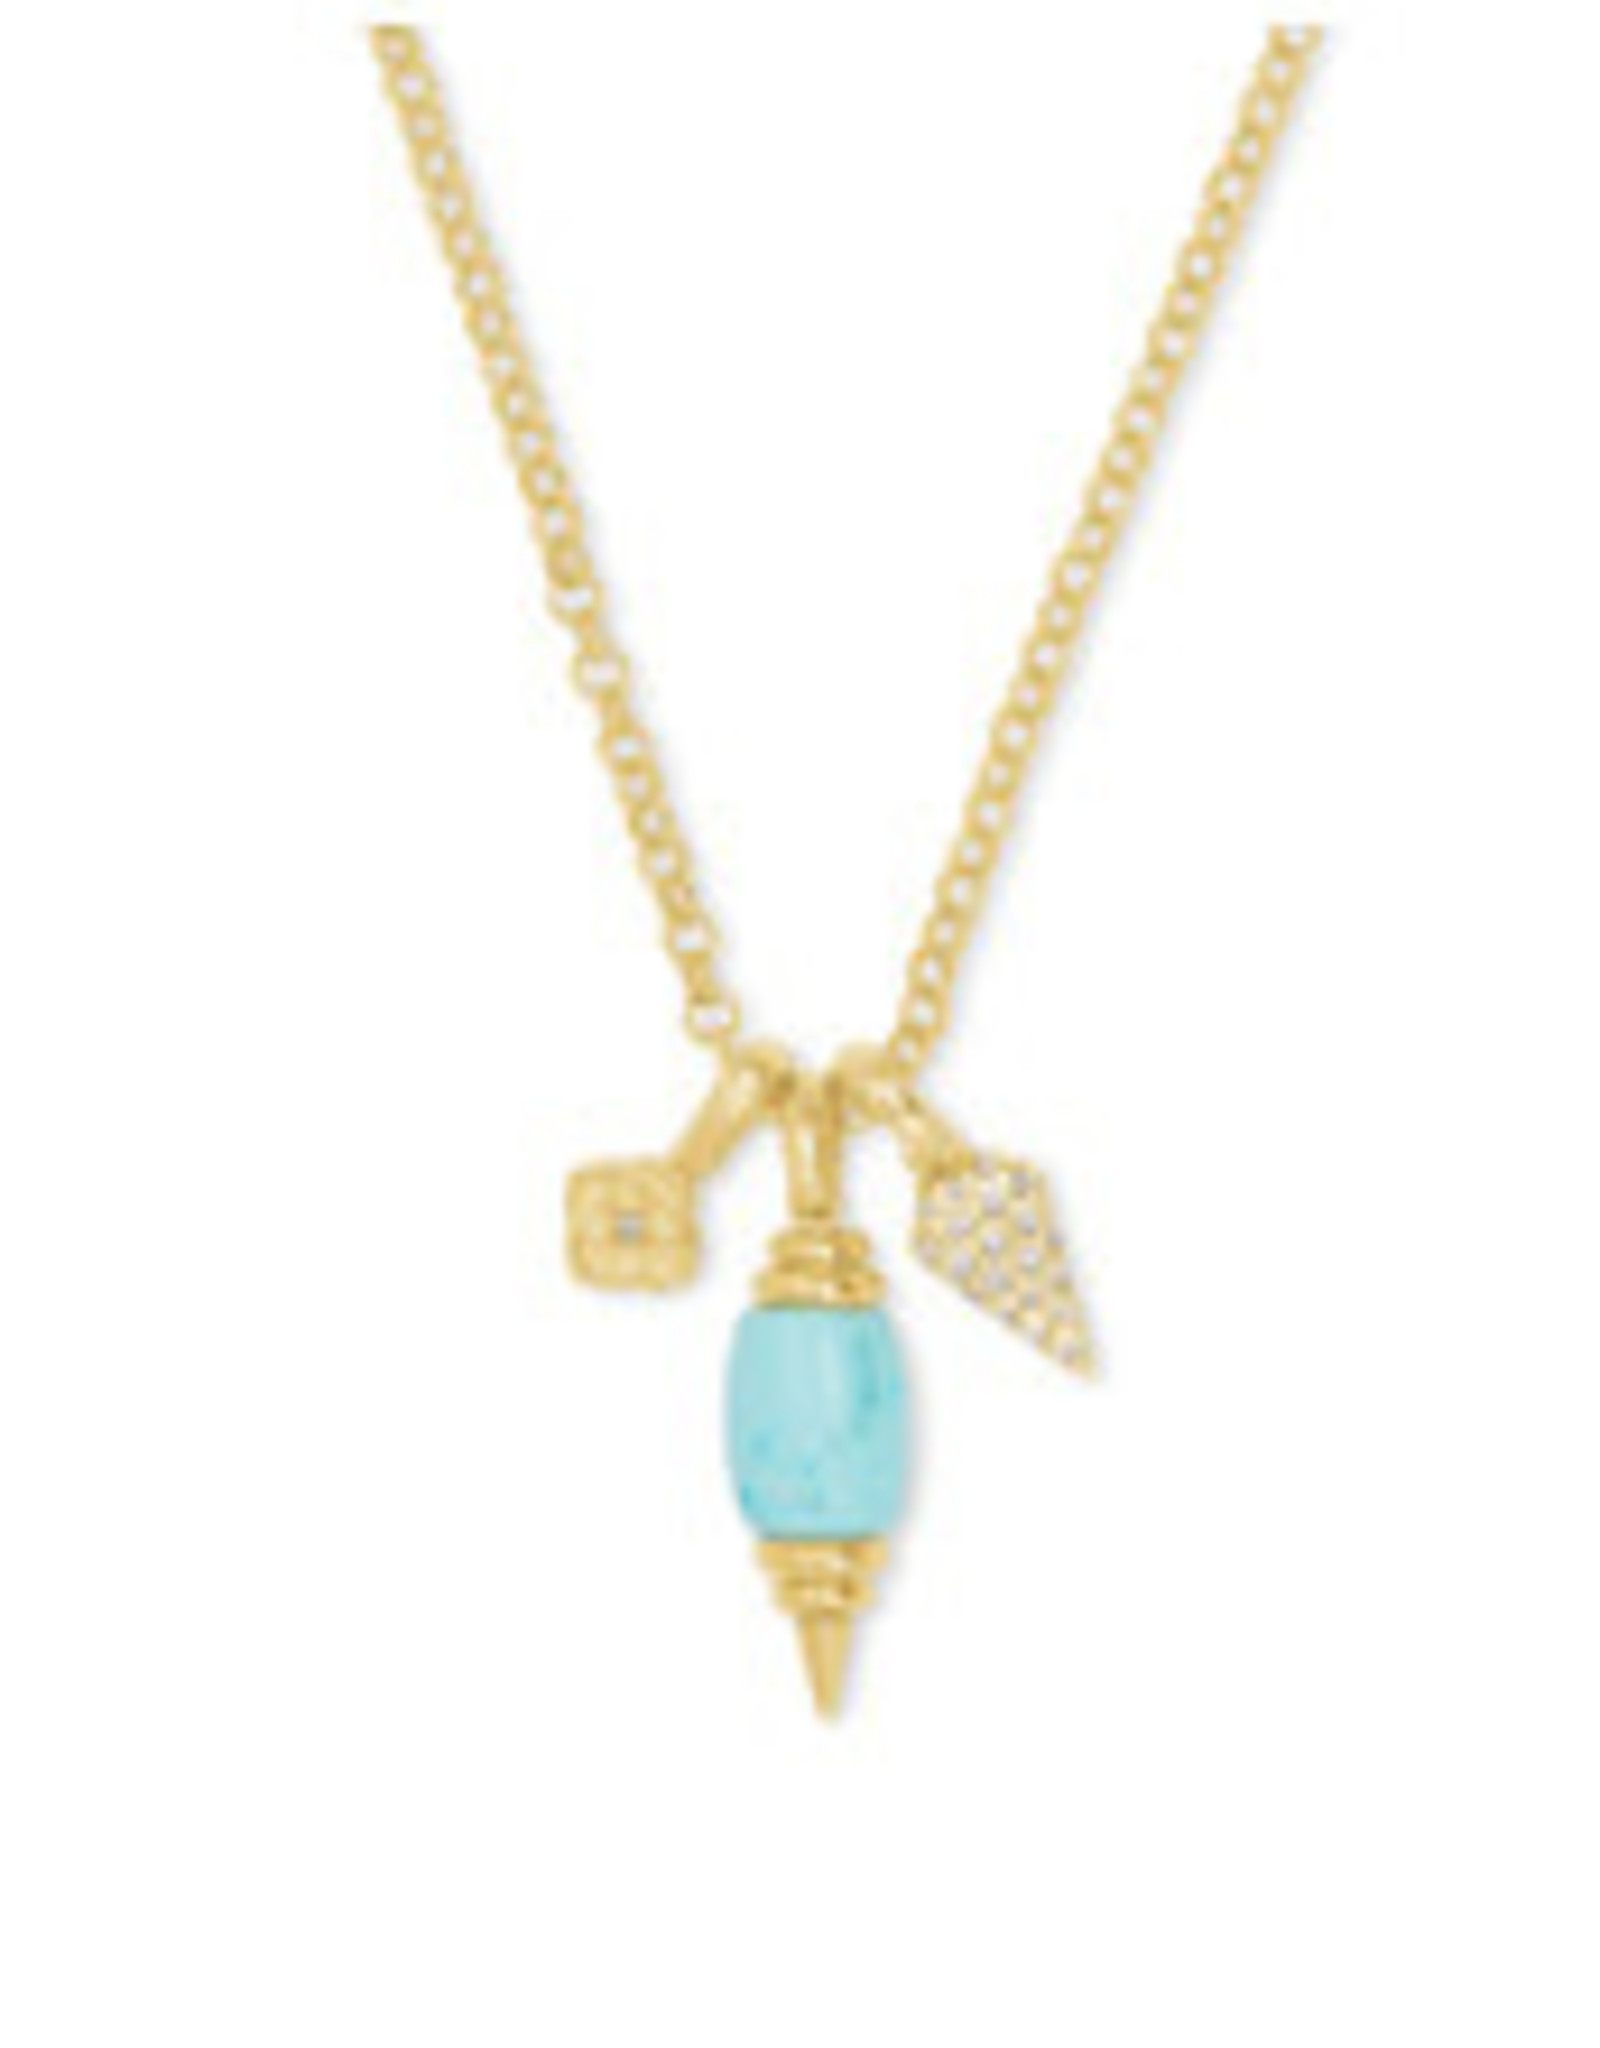 Kendra Scott Kendra Scott Demi Charm Necklace